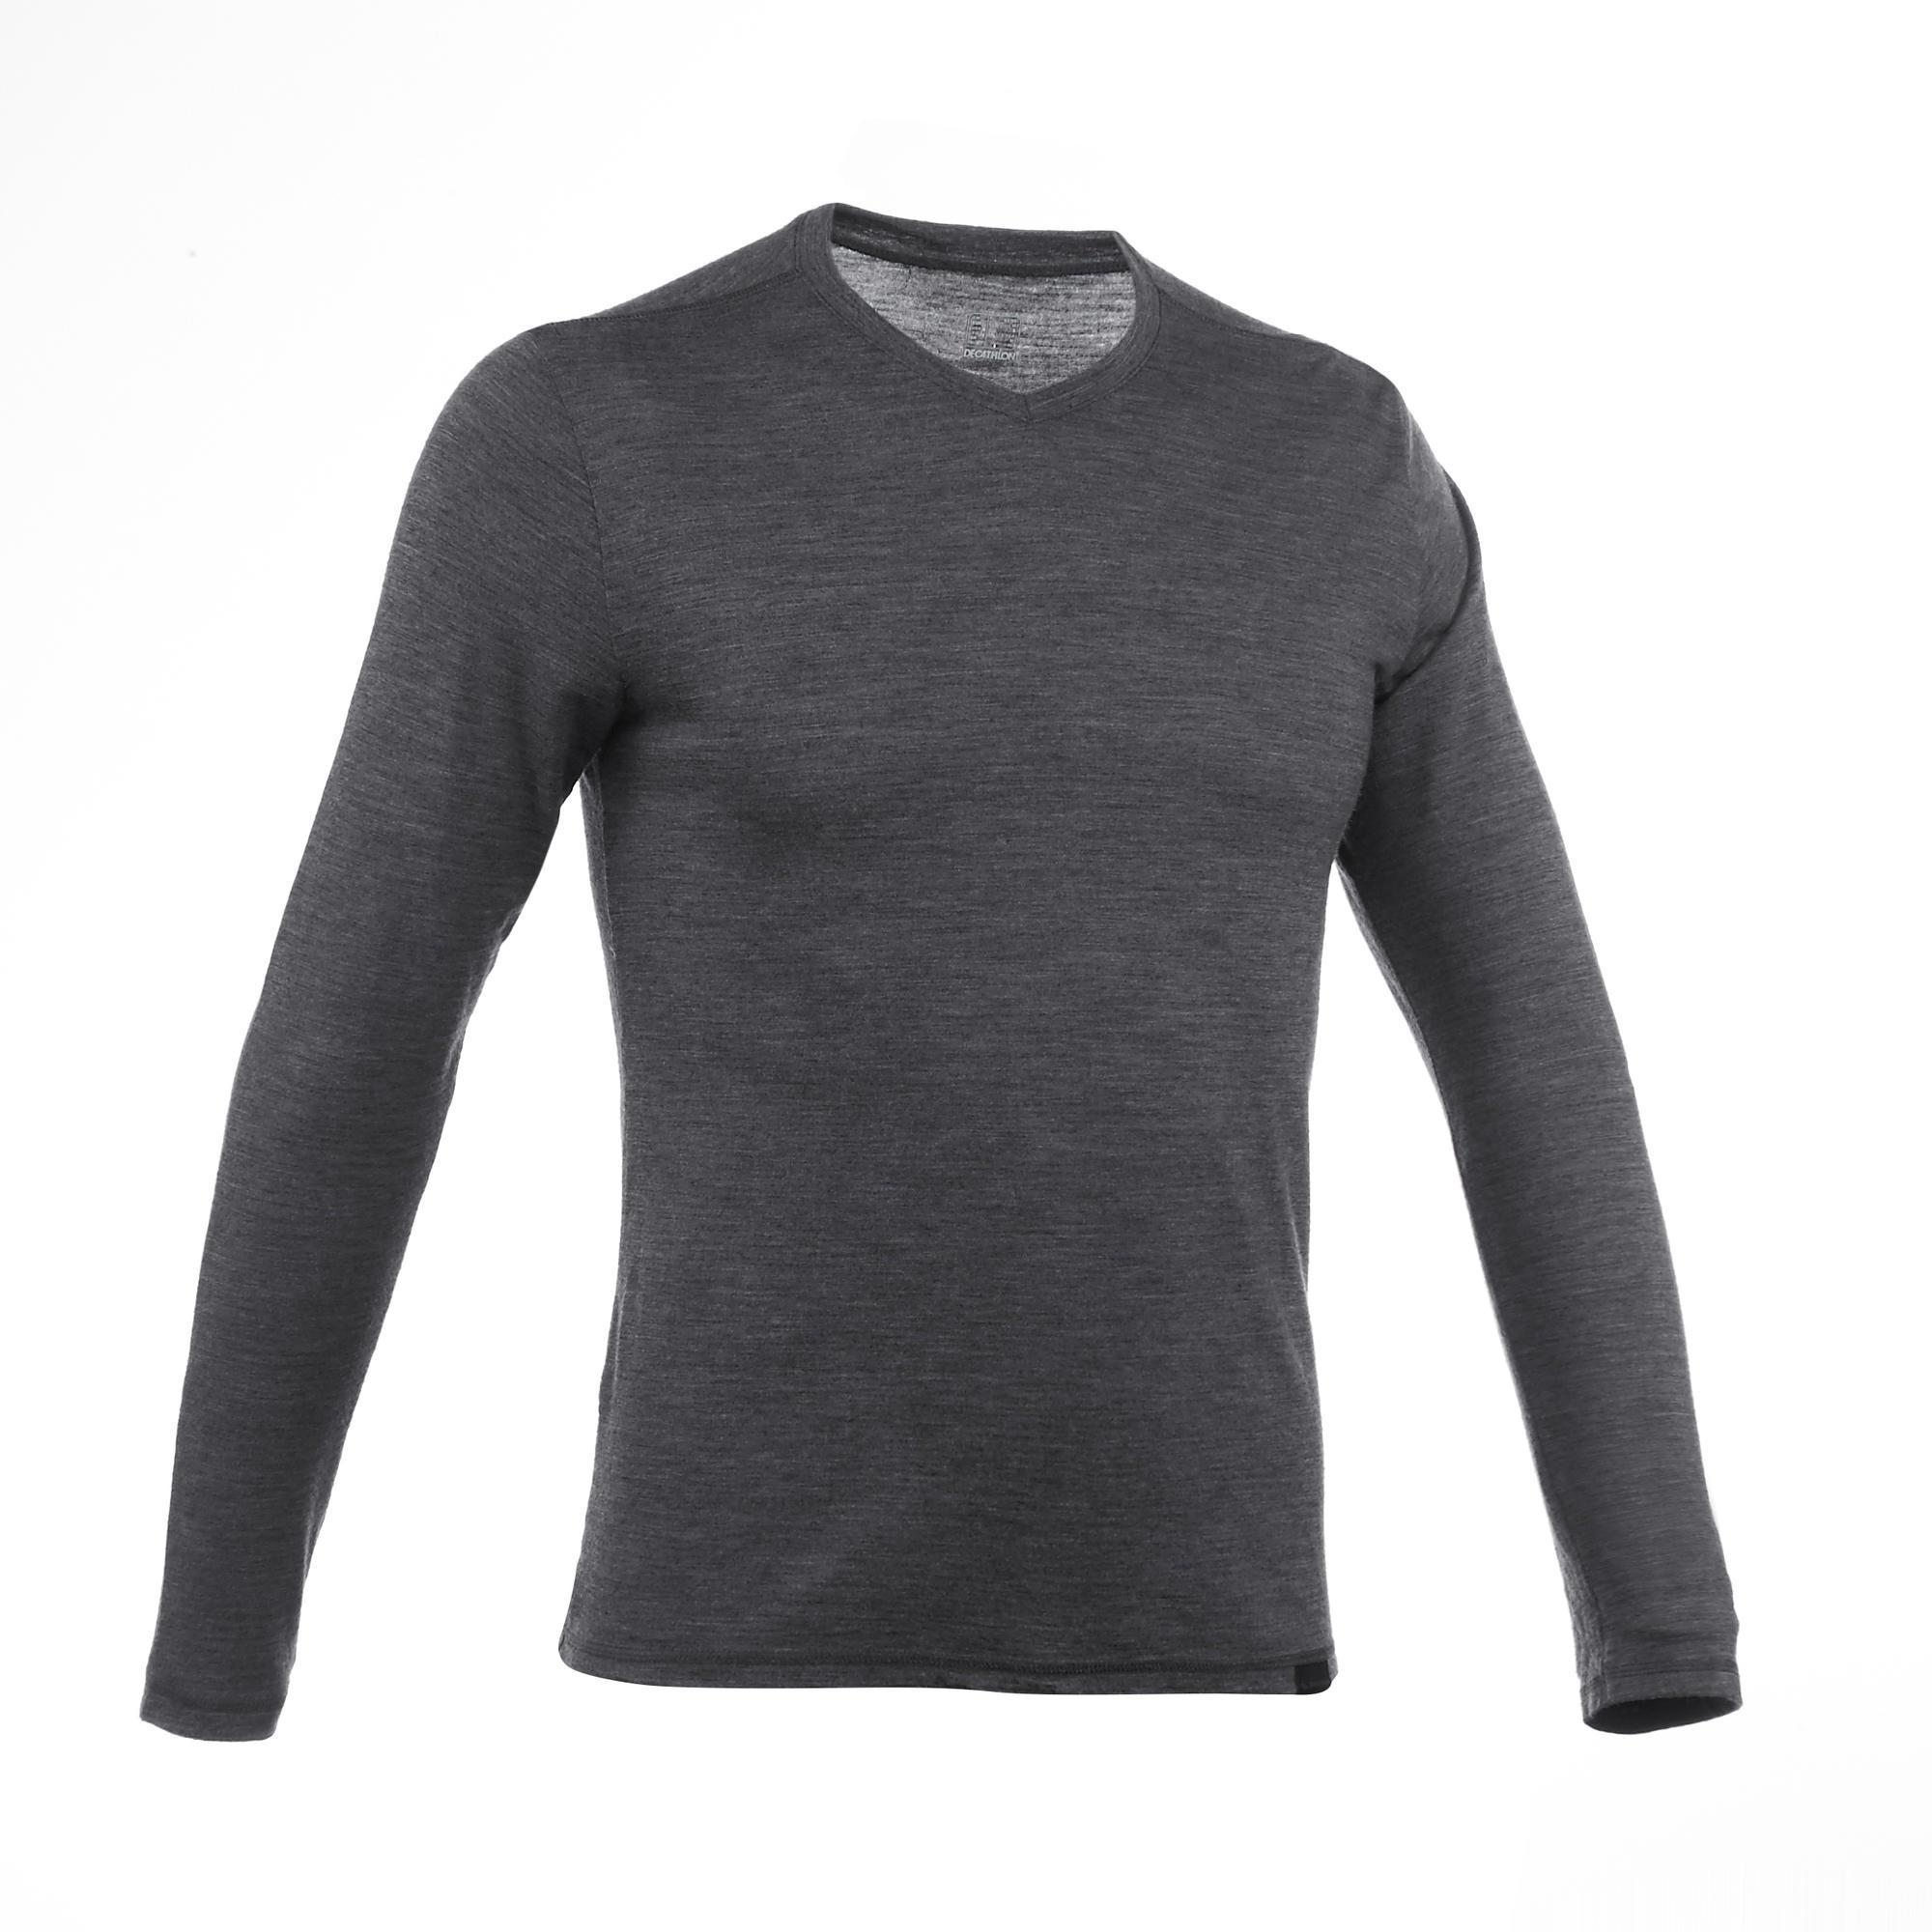 online store low price sells Tee-Shirt manches longues TRAVEL 500 WOOL Homme gris